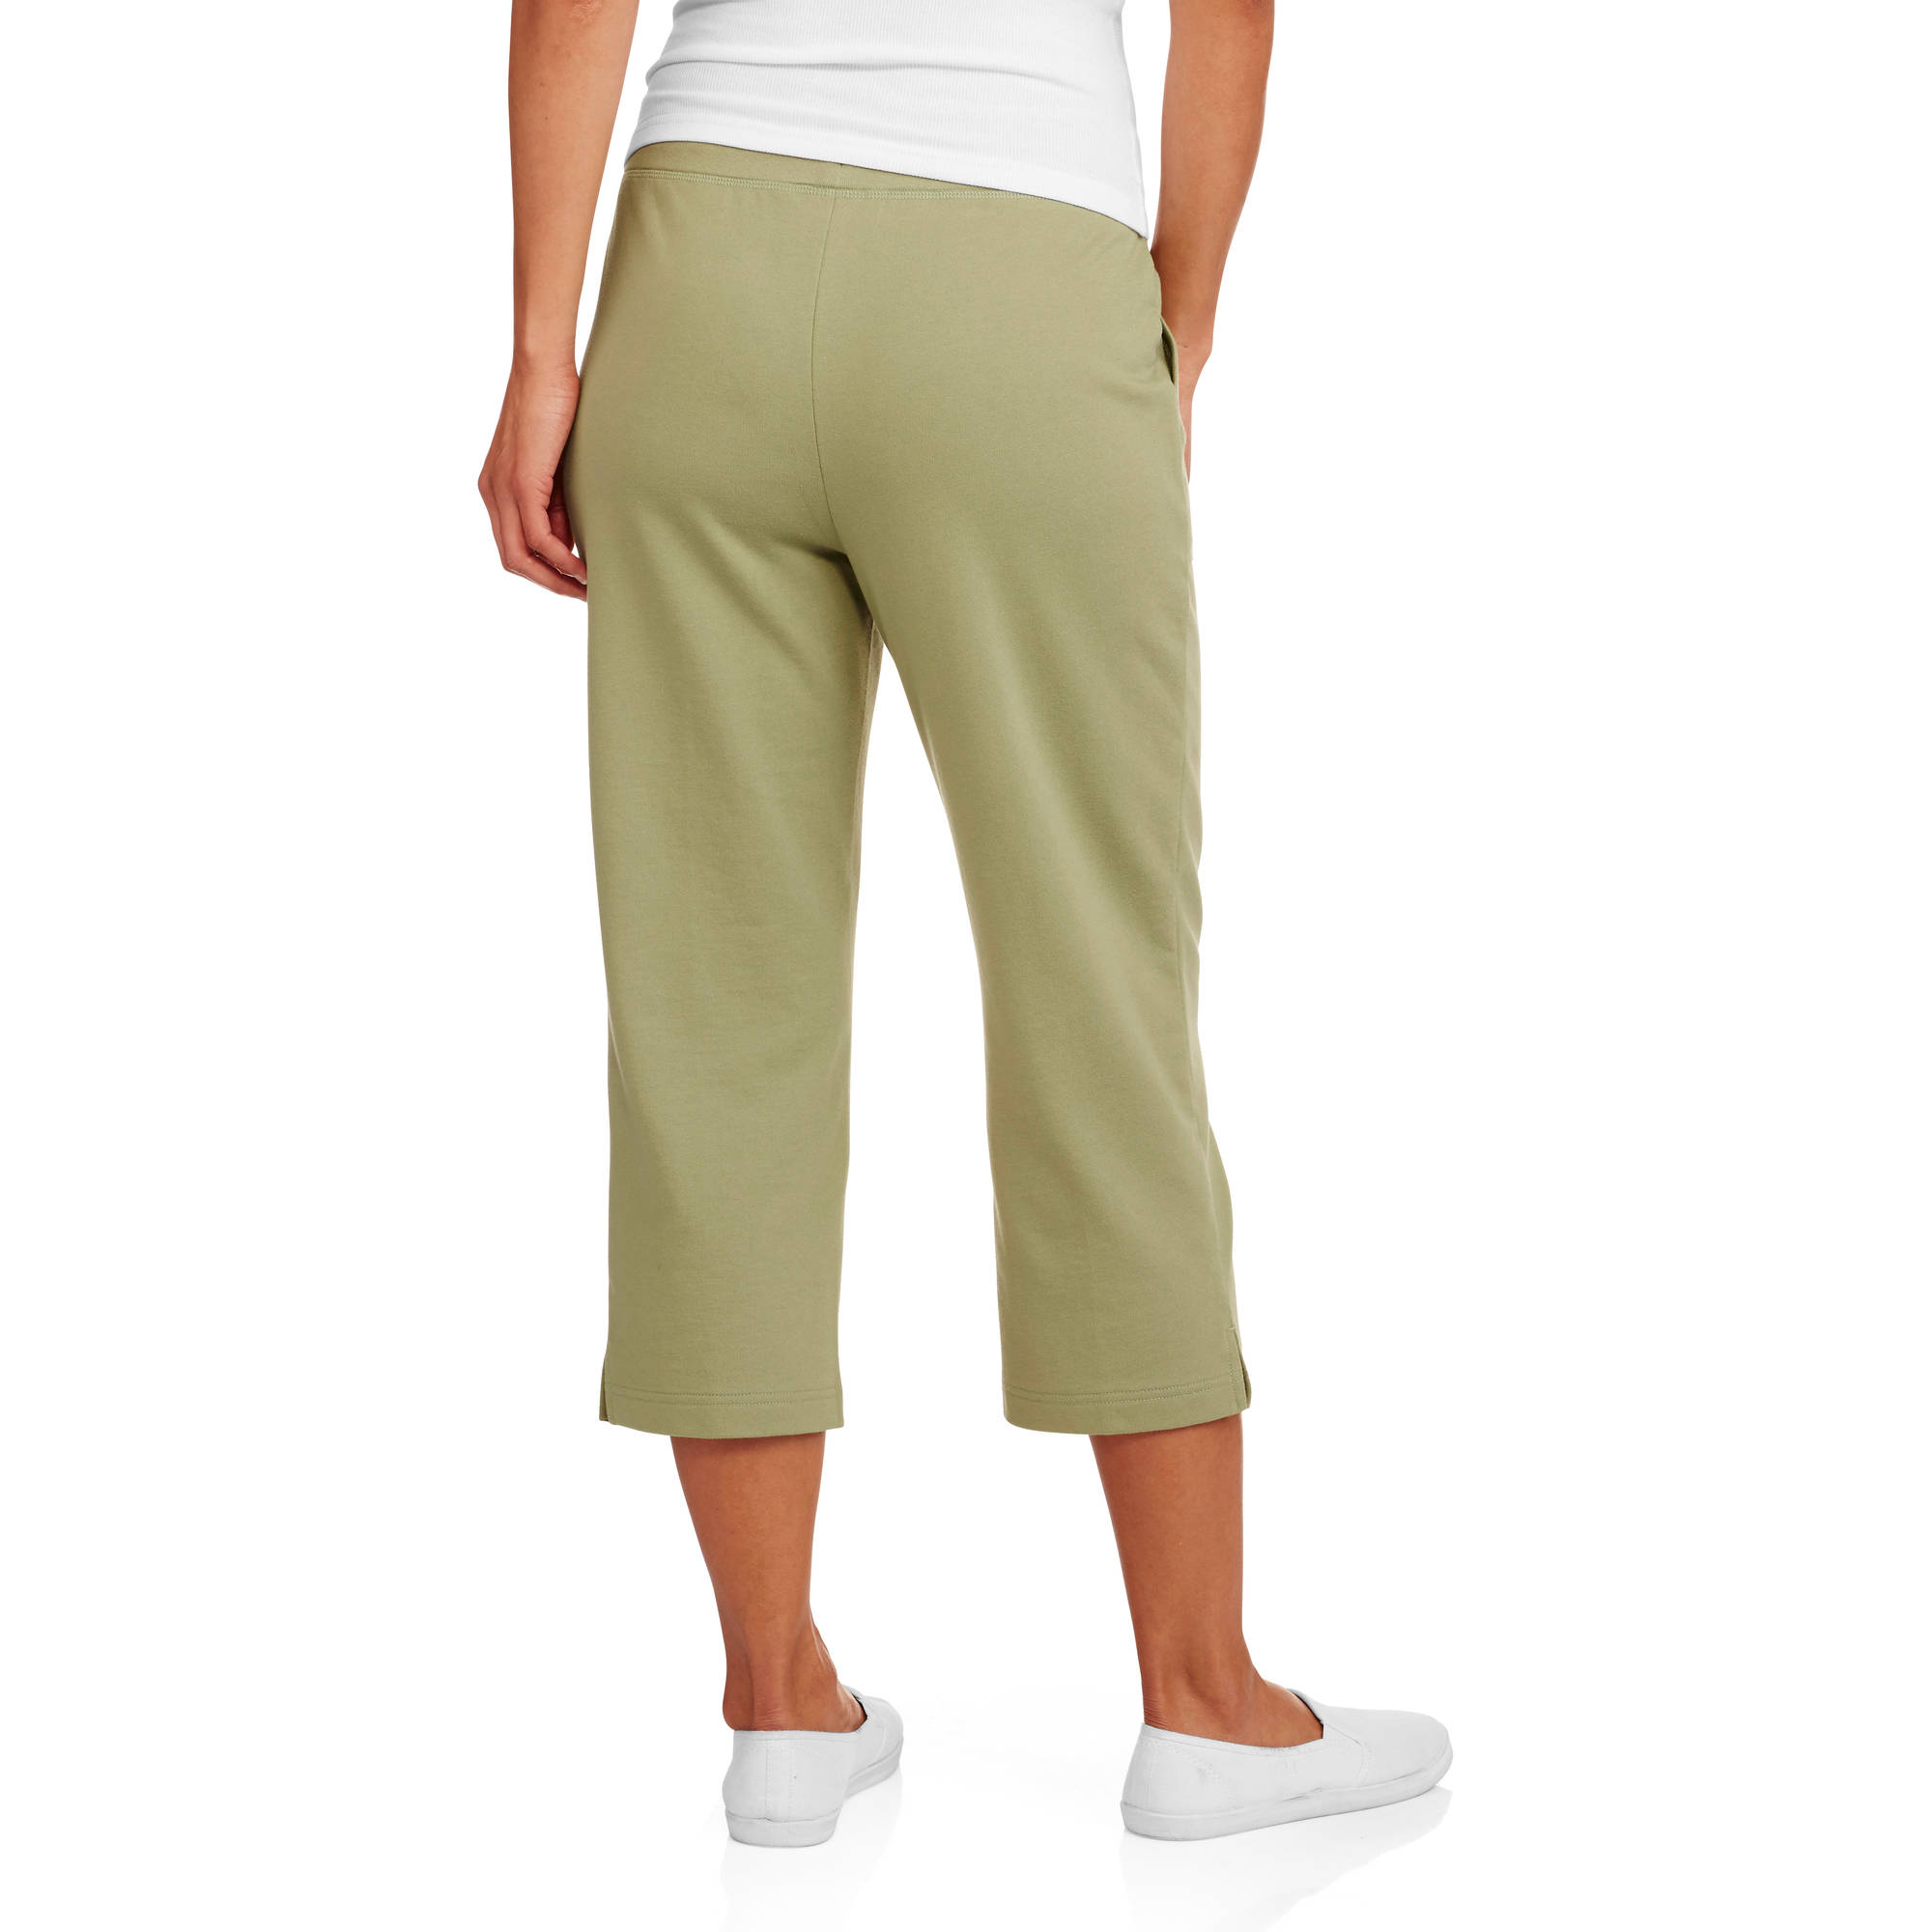 White Stag Women's Knit Pull On Capri Pant - Walmart.com